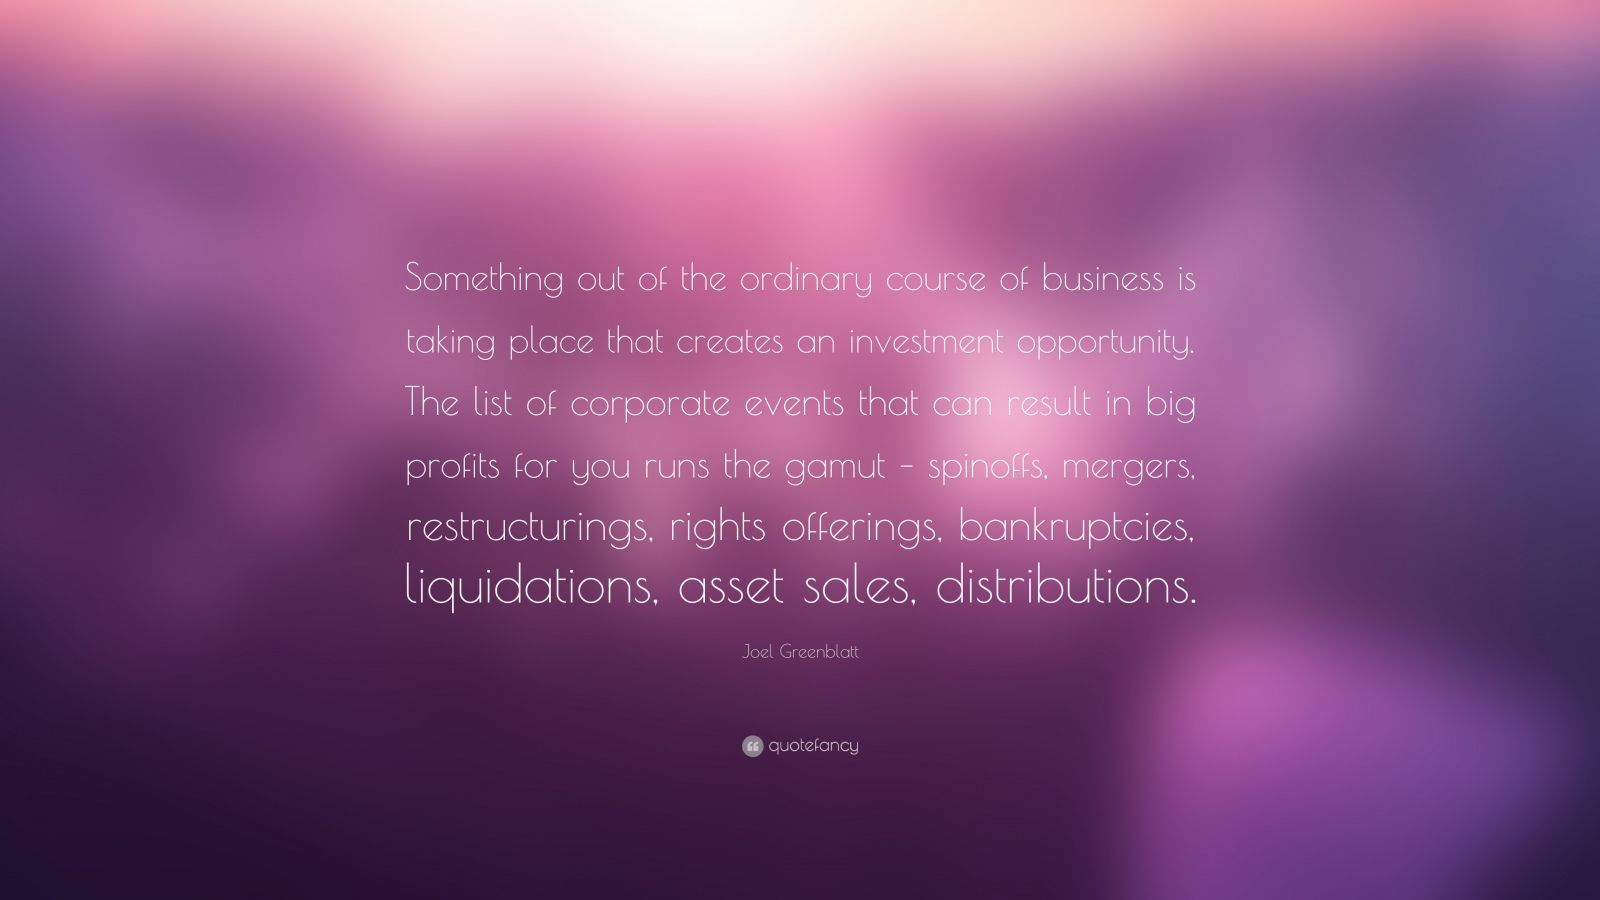 """Joel Greenblatt Quote: """"Something out of the ordinary course of business is taking place that creates an investment opportunity. The list of corporate events that can result in big profits for you runs the gamut – spinoffs, mergers, restructurings, rights offerings, bankruptcies, liquidations, asset sales, distributions."""""""